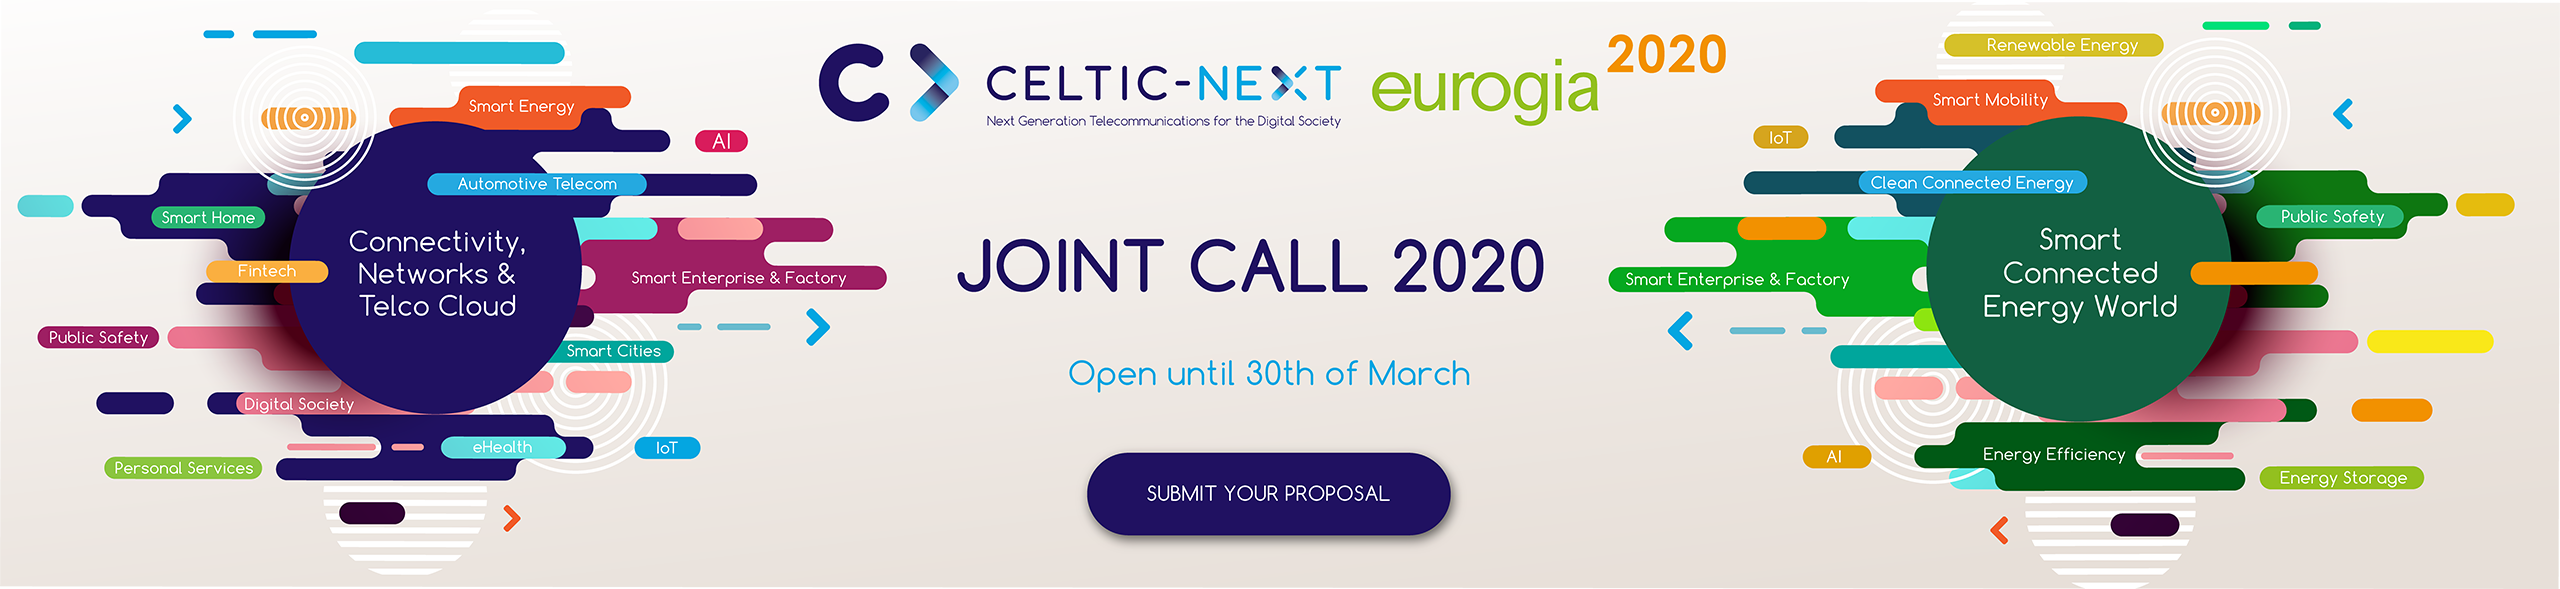 joint_bannereurogia_celticnext_medium